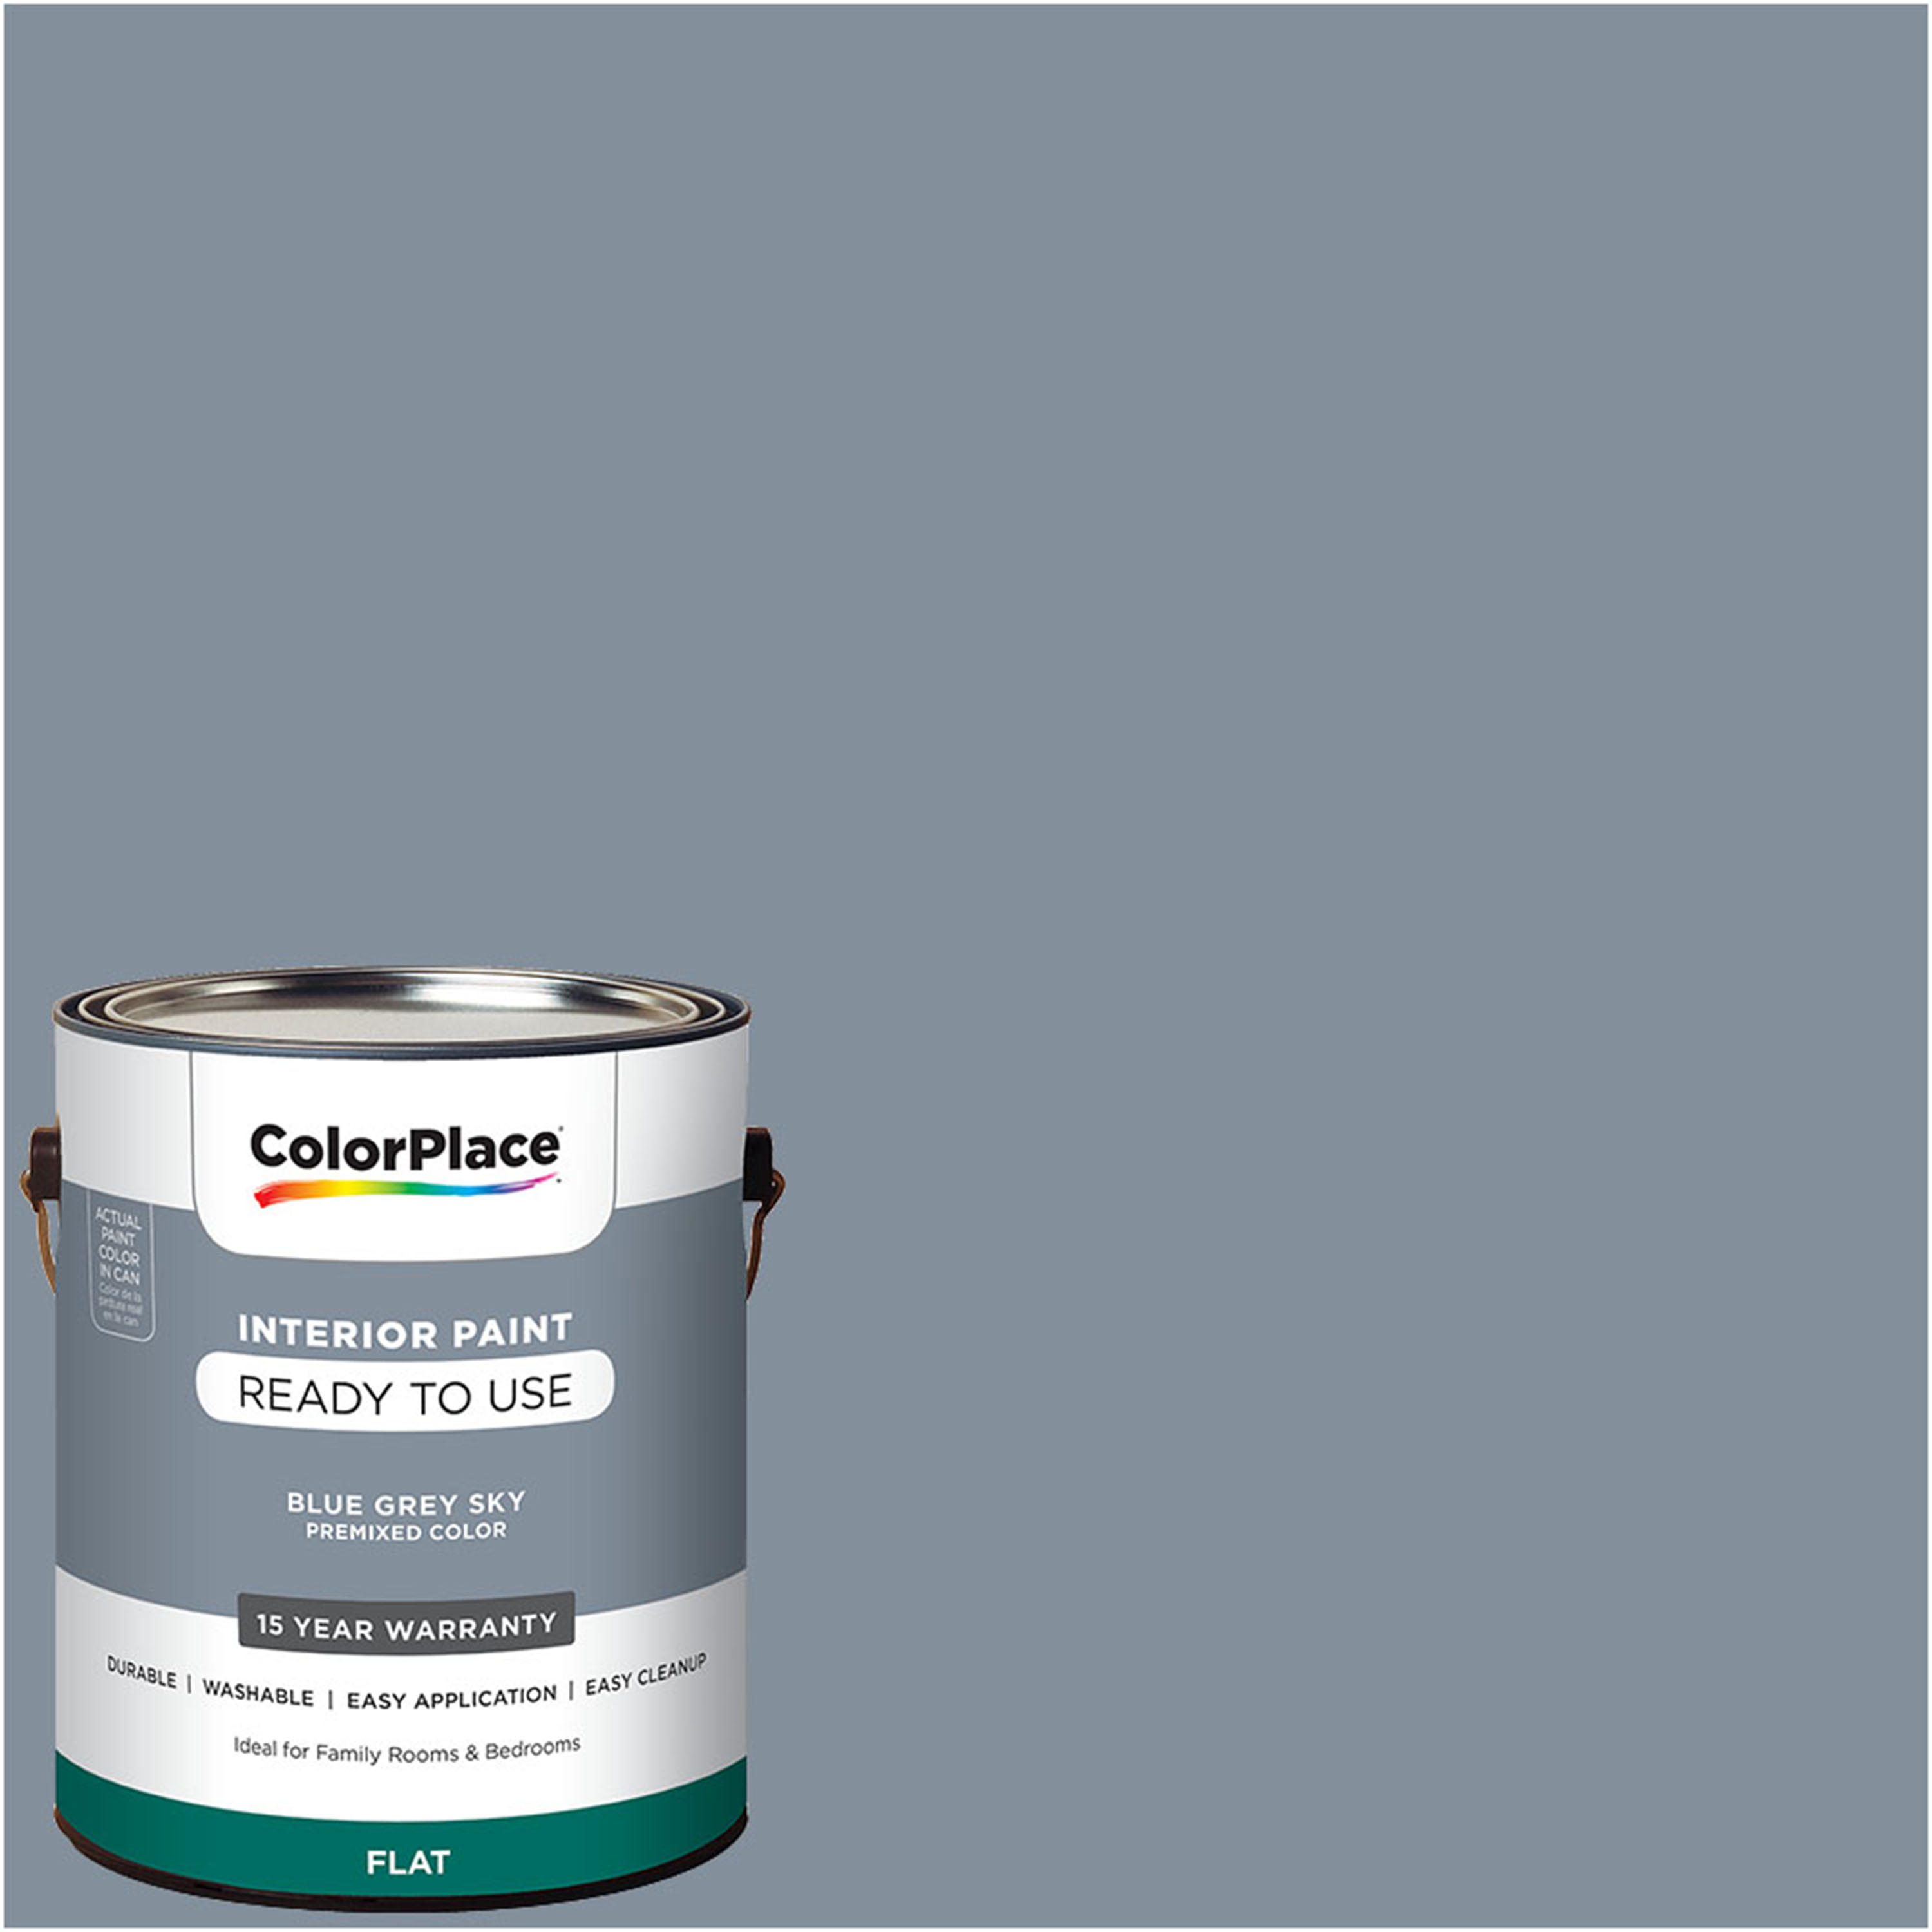 ColorPlace Pre Mixed Ready To Use, Interior Paint, Blue Grey Sky, 1 Gallon